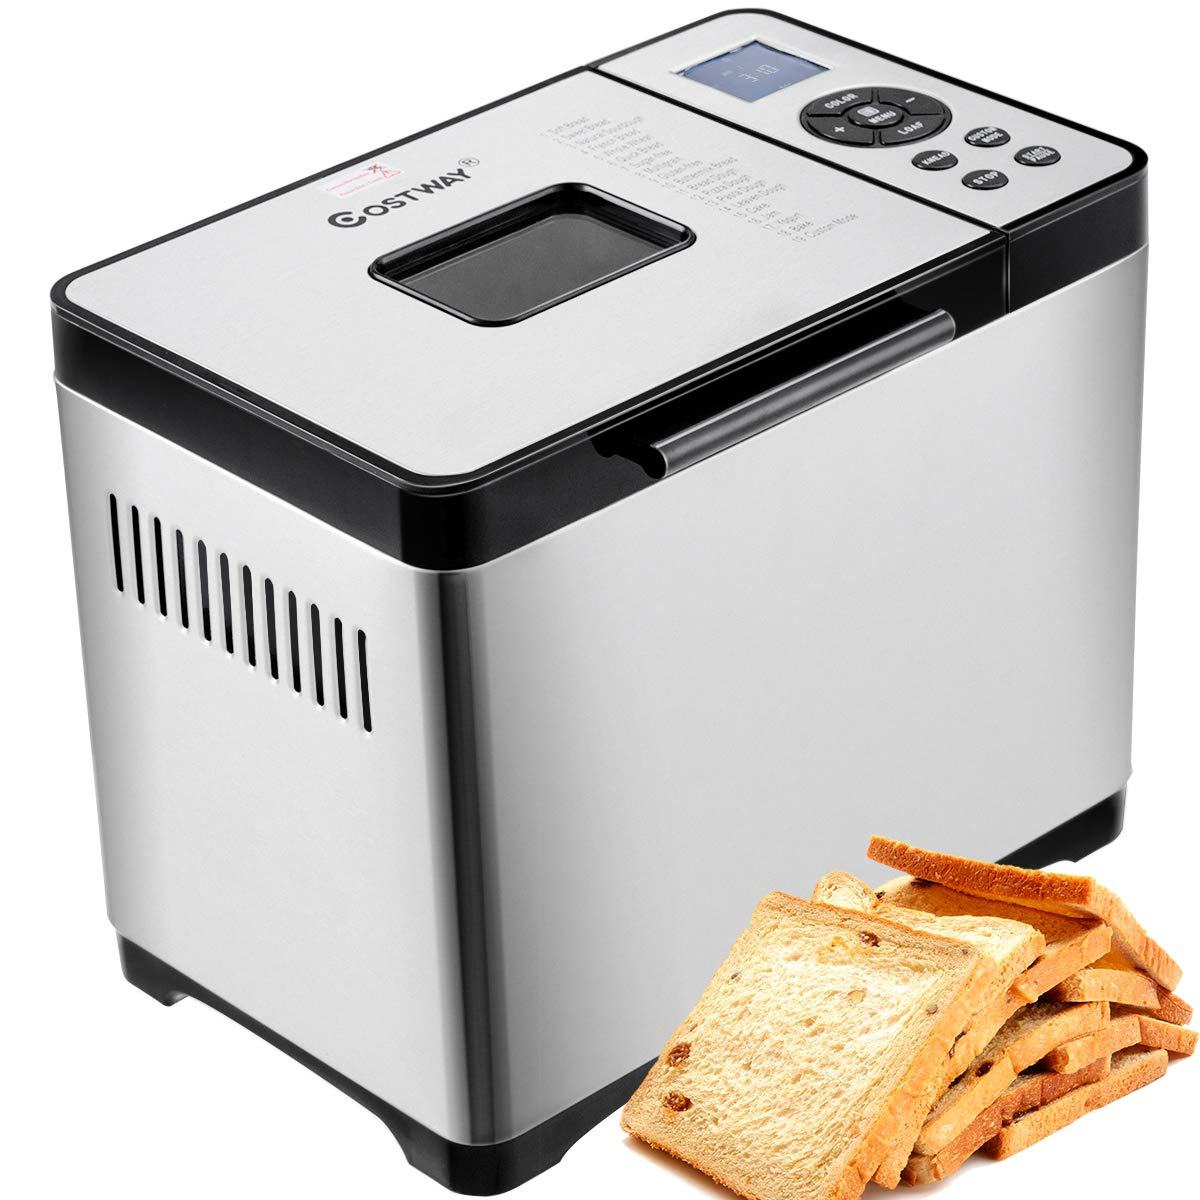 COSTWAY Bread Maker Stainless Steel Automatic Programmable Multifunctional Bread Machine with 19 Programs, 3 Loaf Sizes, 3 Crust Colors, 15 Hours Delay Timer, 1 Hour Keep Warm 19 Programs 650W